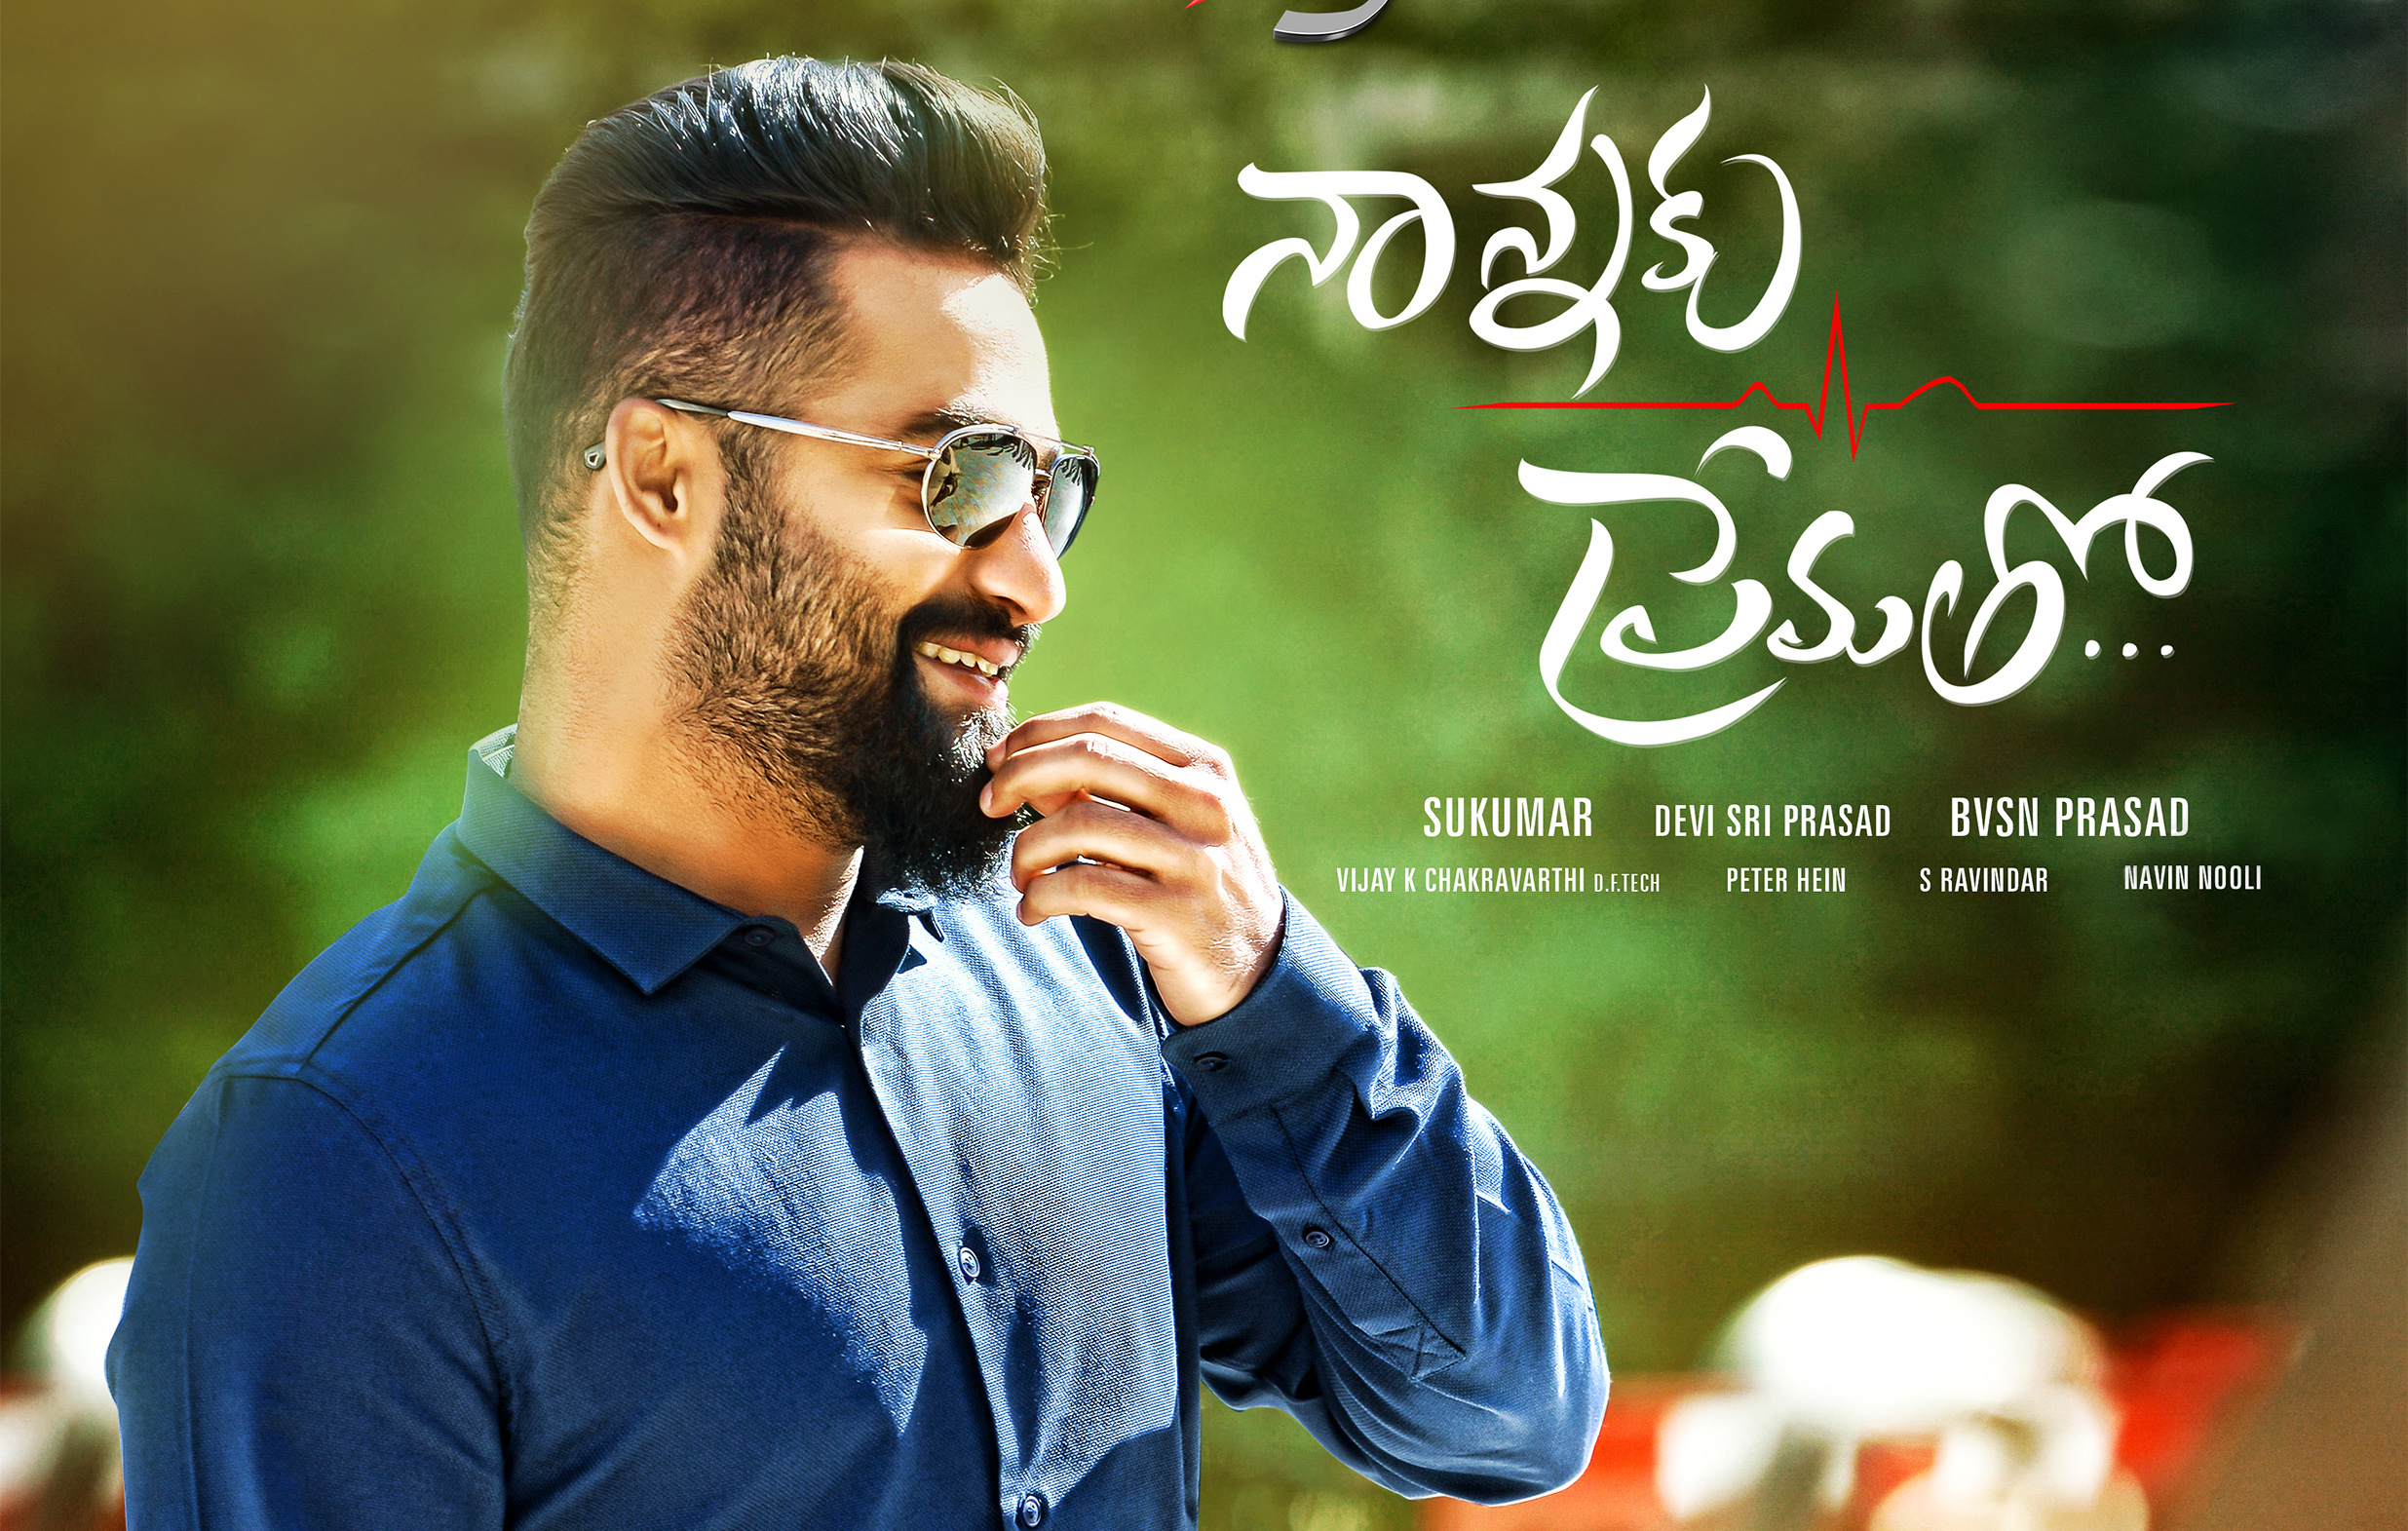 2nd Day Nannaku Prematho Movie 2 Days Box Office Collection